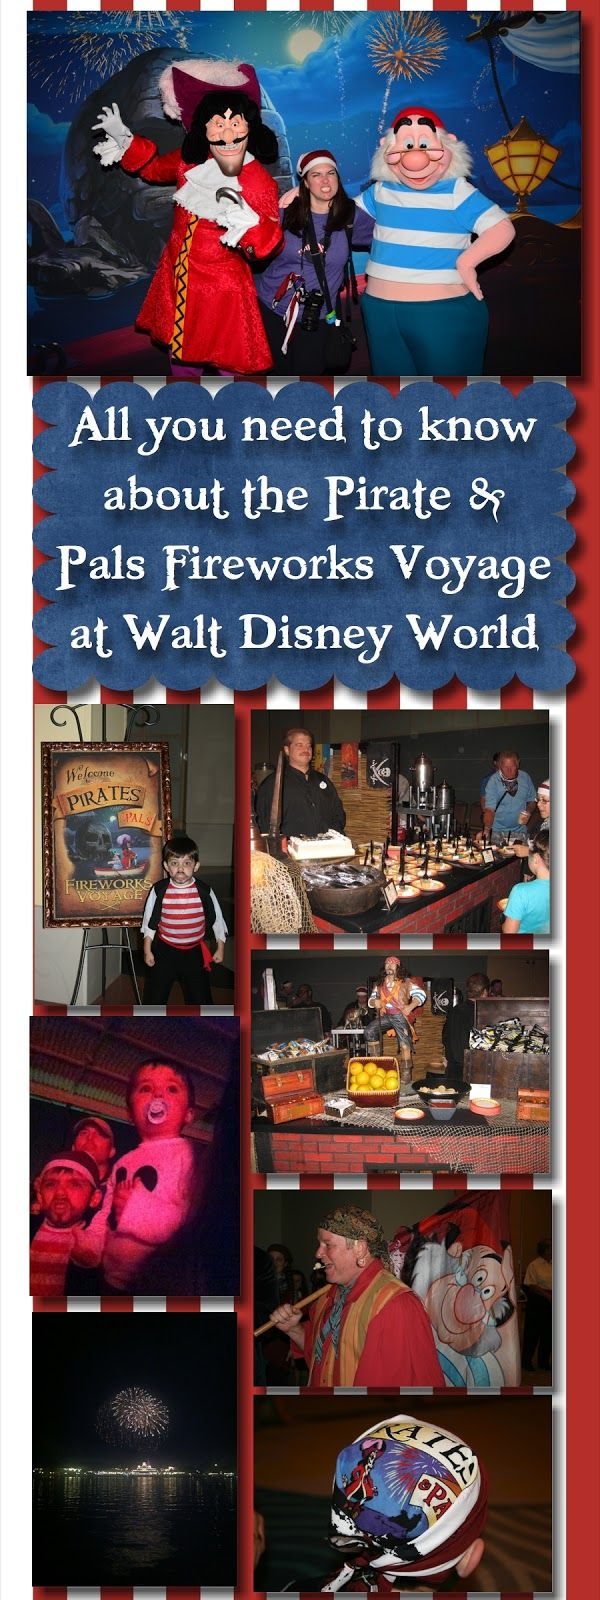 A Disney Mom's Thoughts: All About Disney's Pirates and Pals Fireworks Voyage at Disney World  | Disney World with Kids